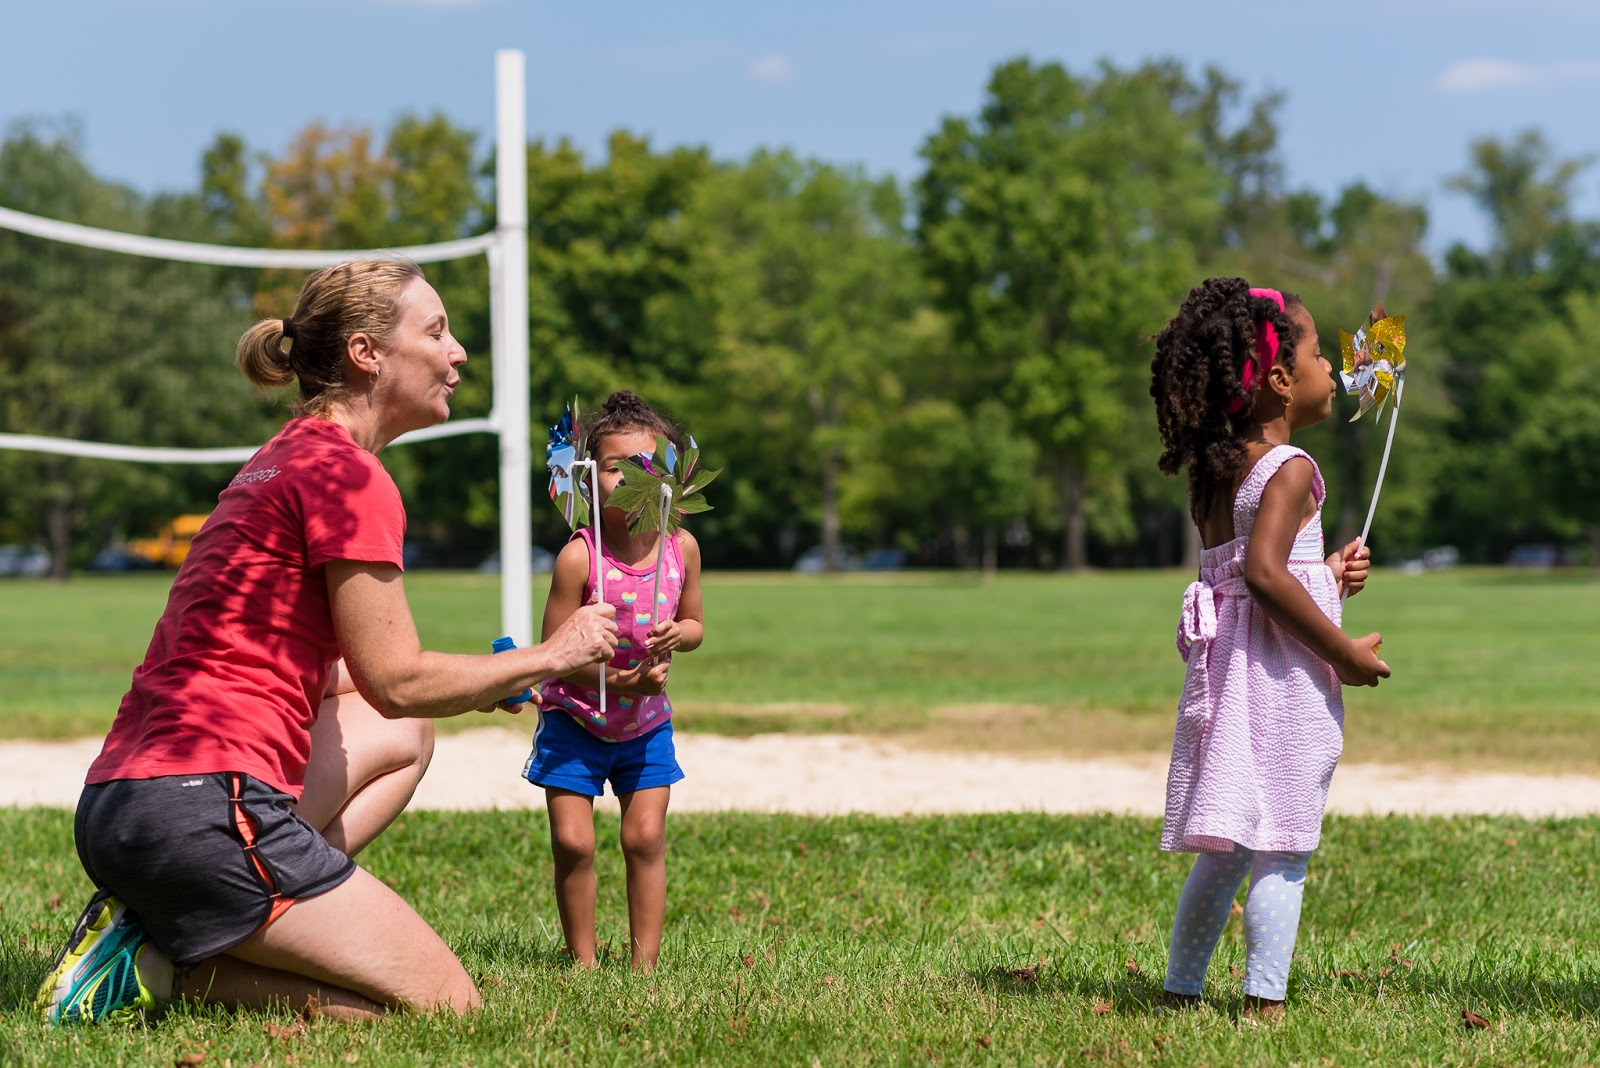 Cheryl modeling pinwheel with children Music Together Vivo! Park Playalong © Diana Sherblom Photography